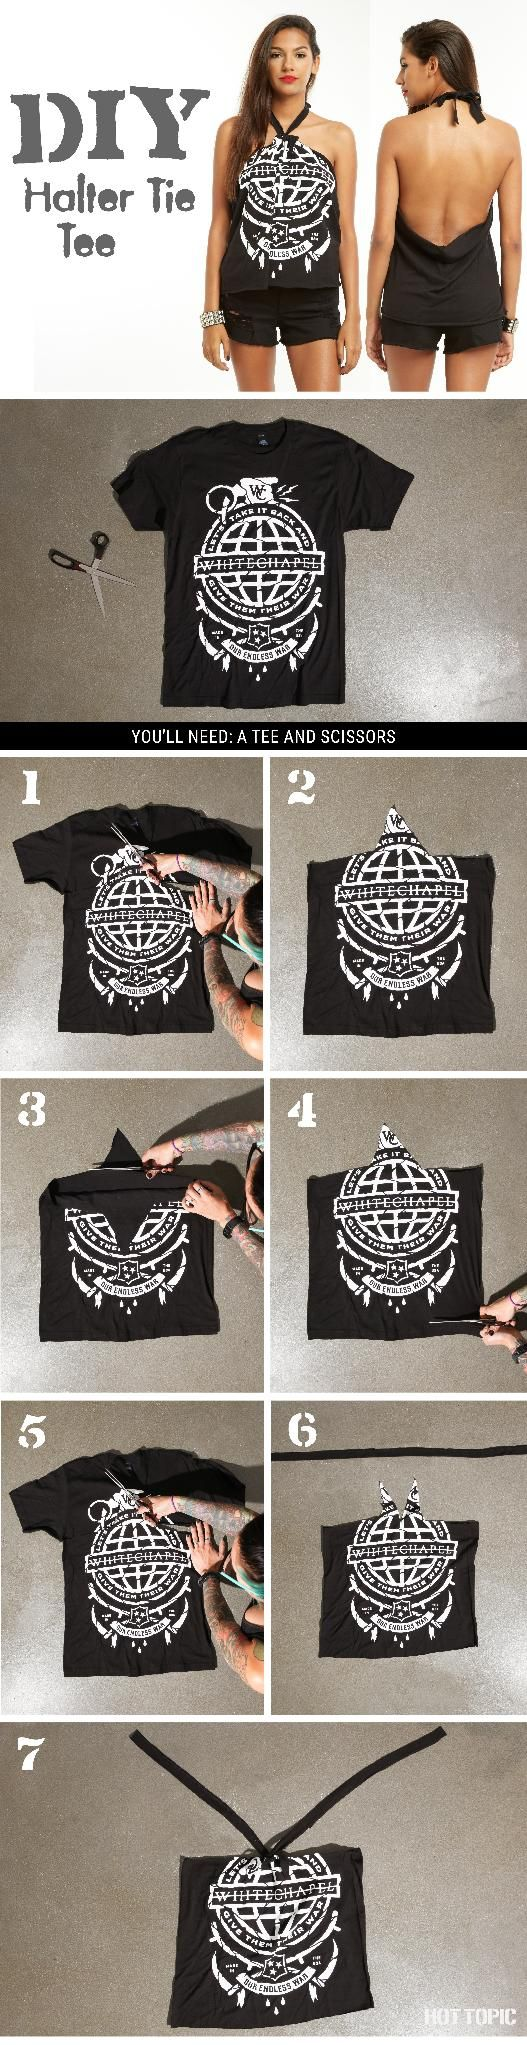 Got an old tee? Make it a halter top!